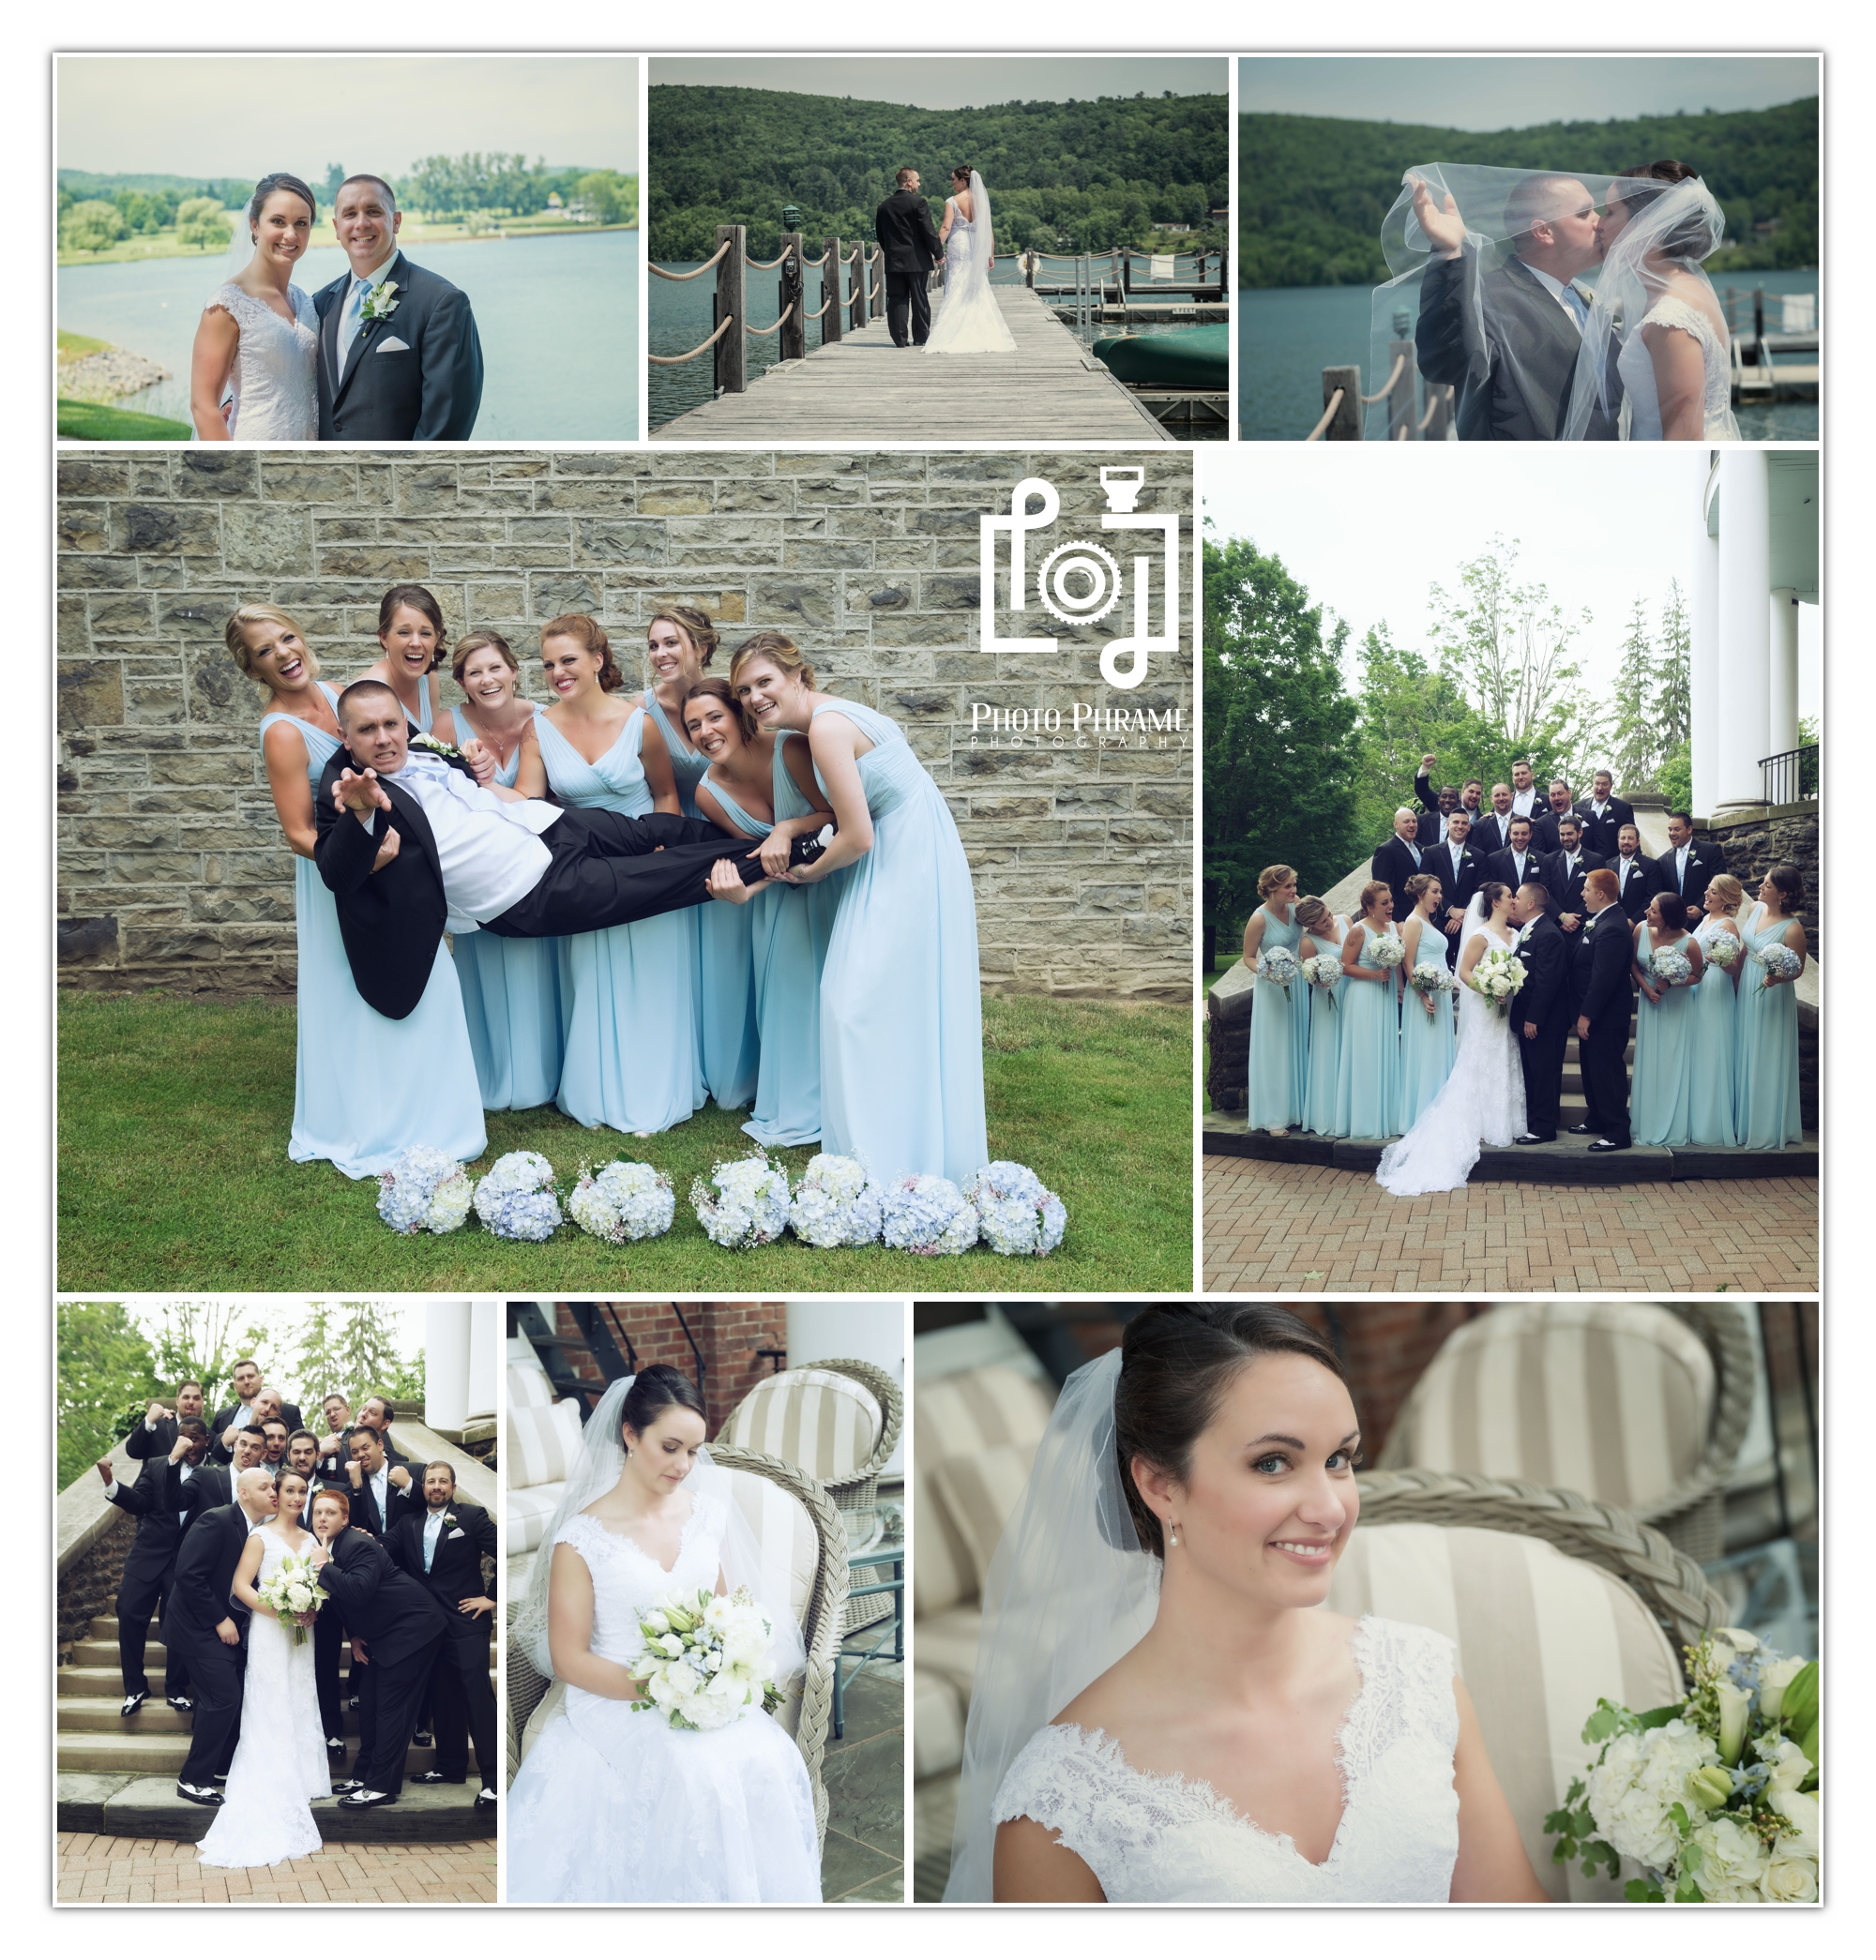 Photo Phrame Photography, Cooperstown Wedding